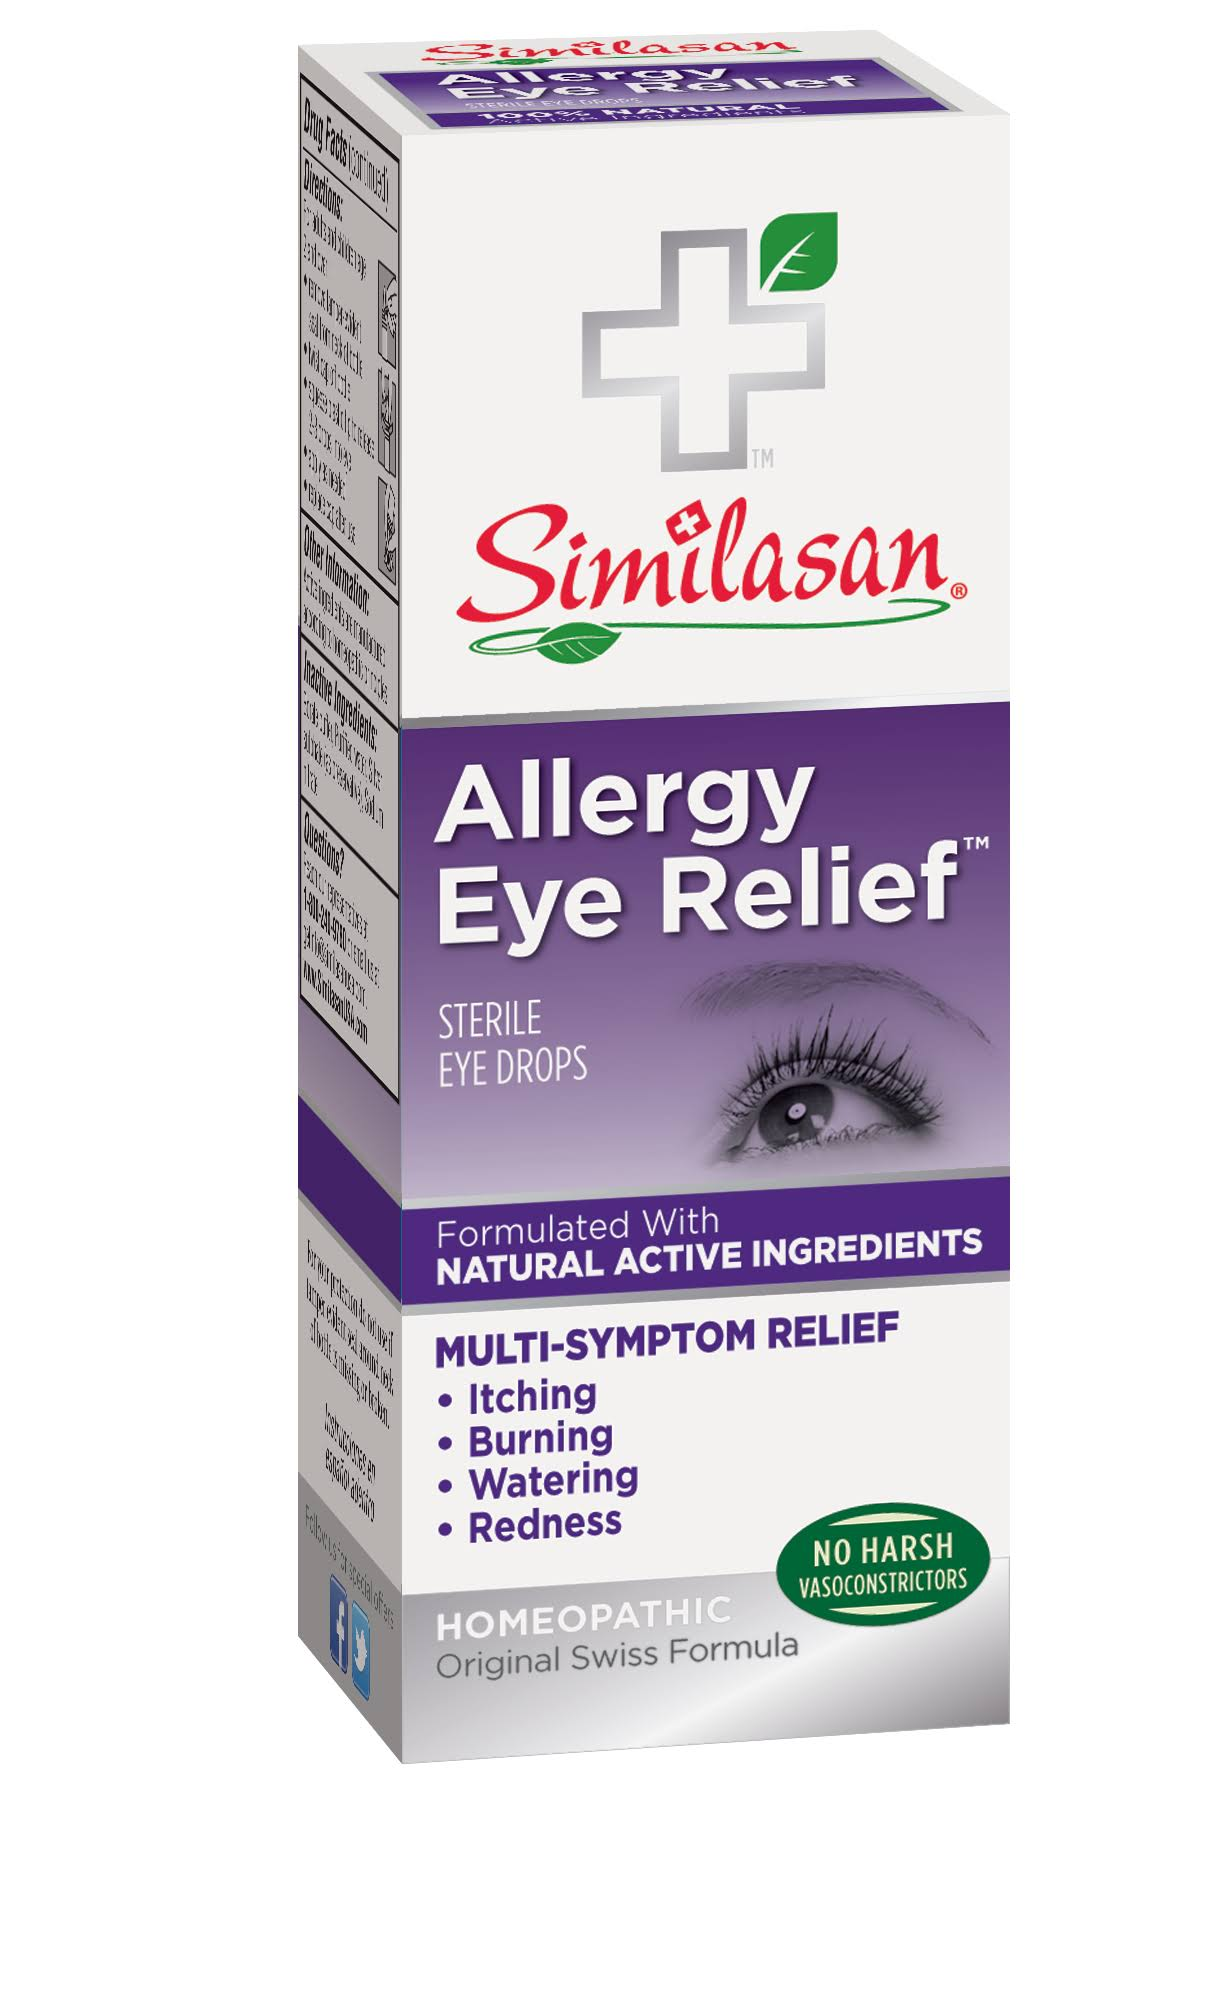 Similasan Allergy Eye Relief Sterile Eye Drops - 0.33oz